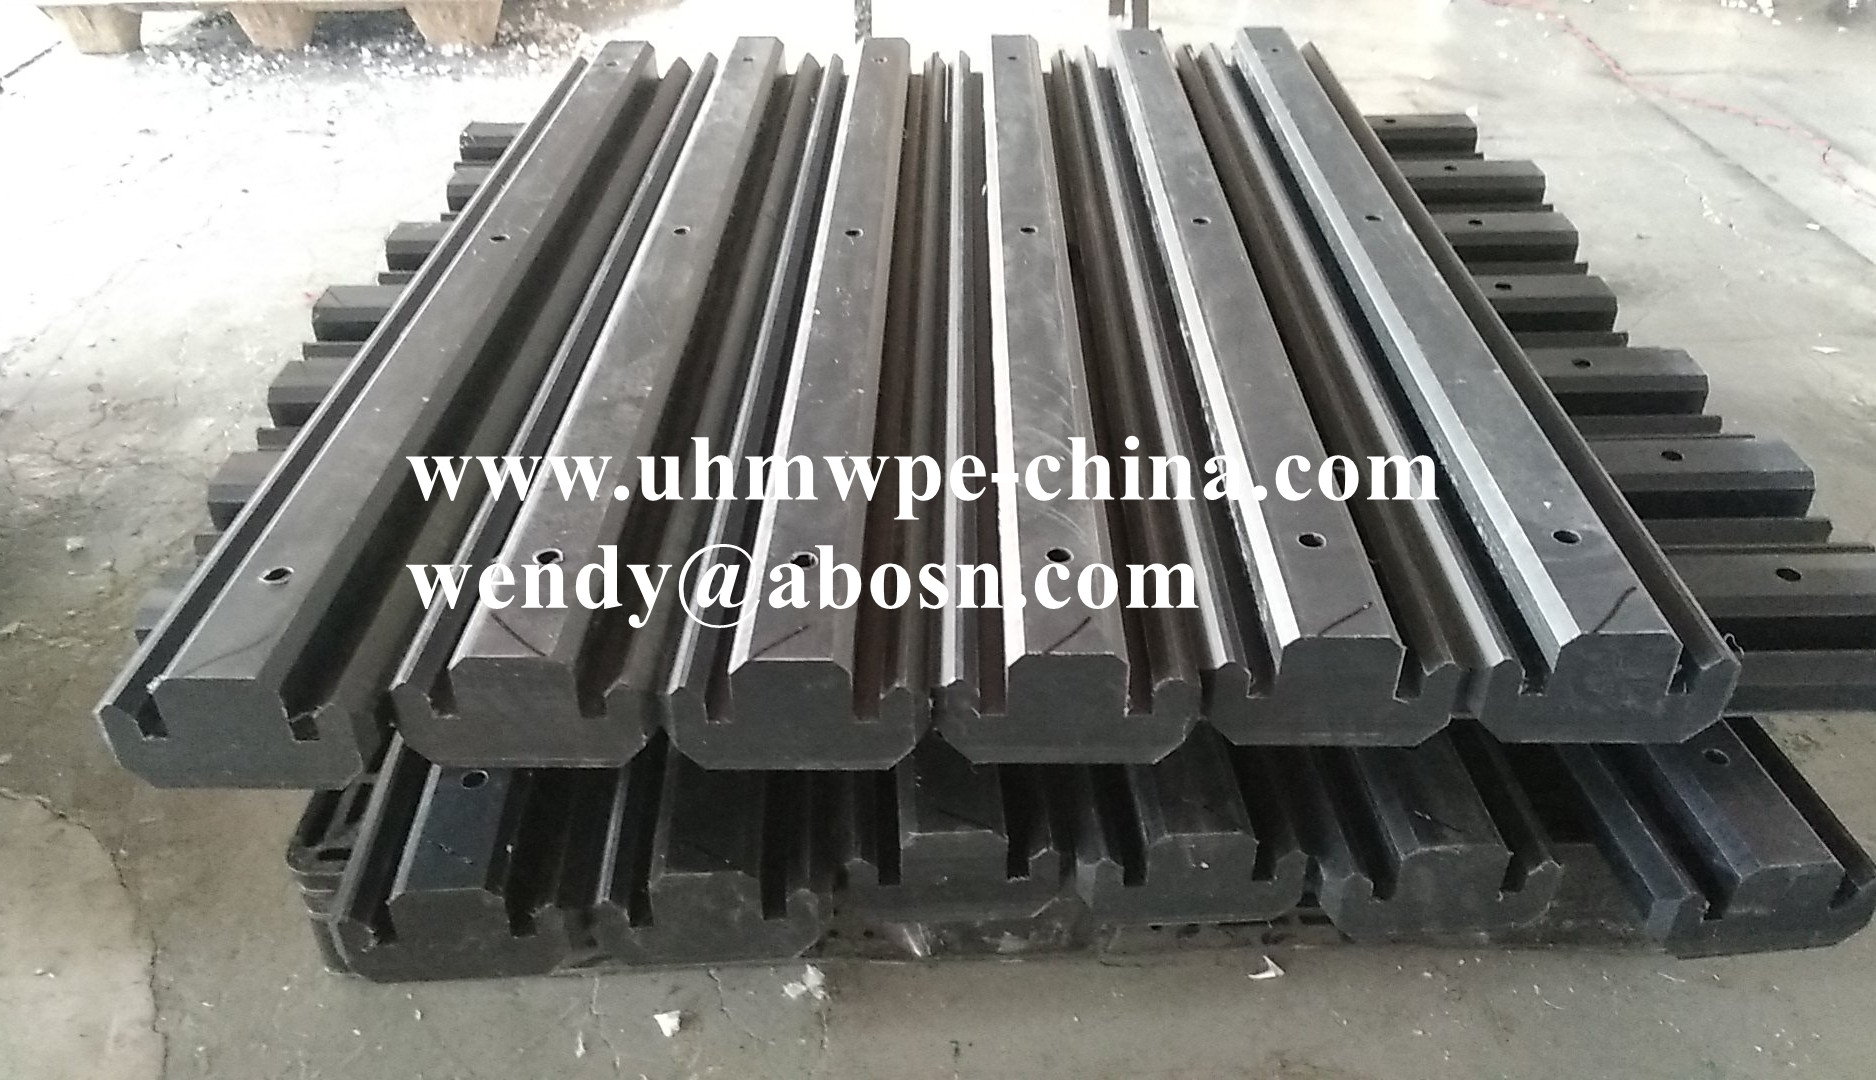 Excellent Chemical Resistance Machined UHMW Polymer Parts